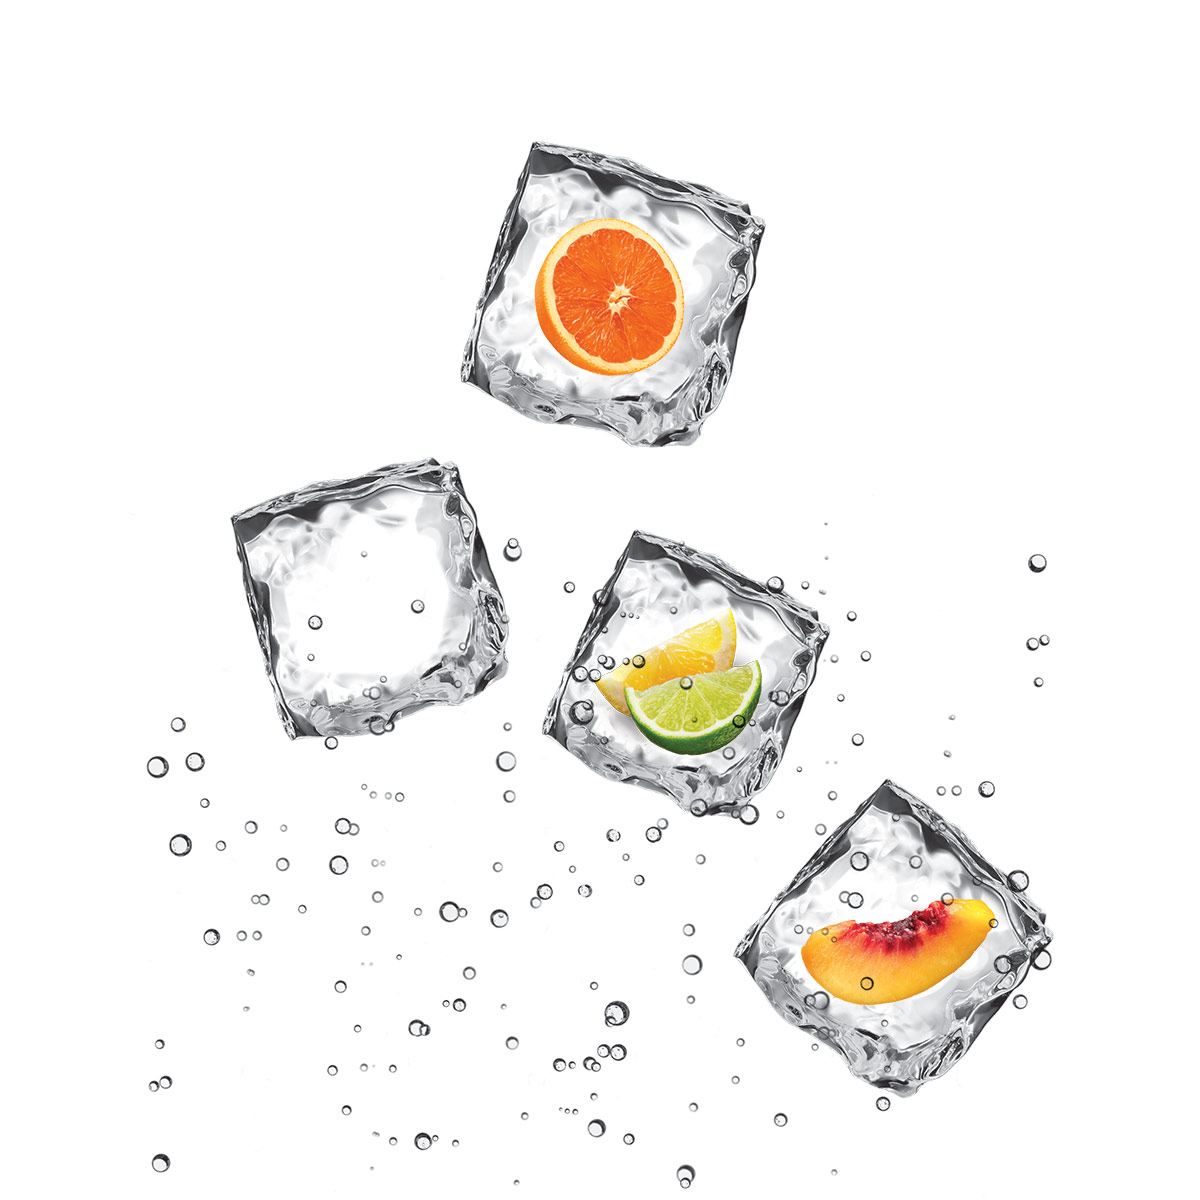 Ice Cubes with fruit inside